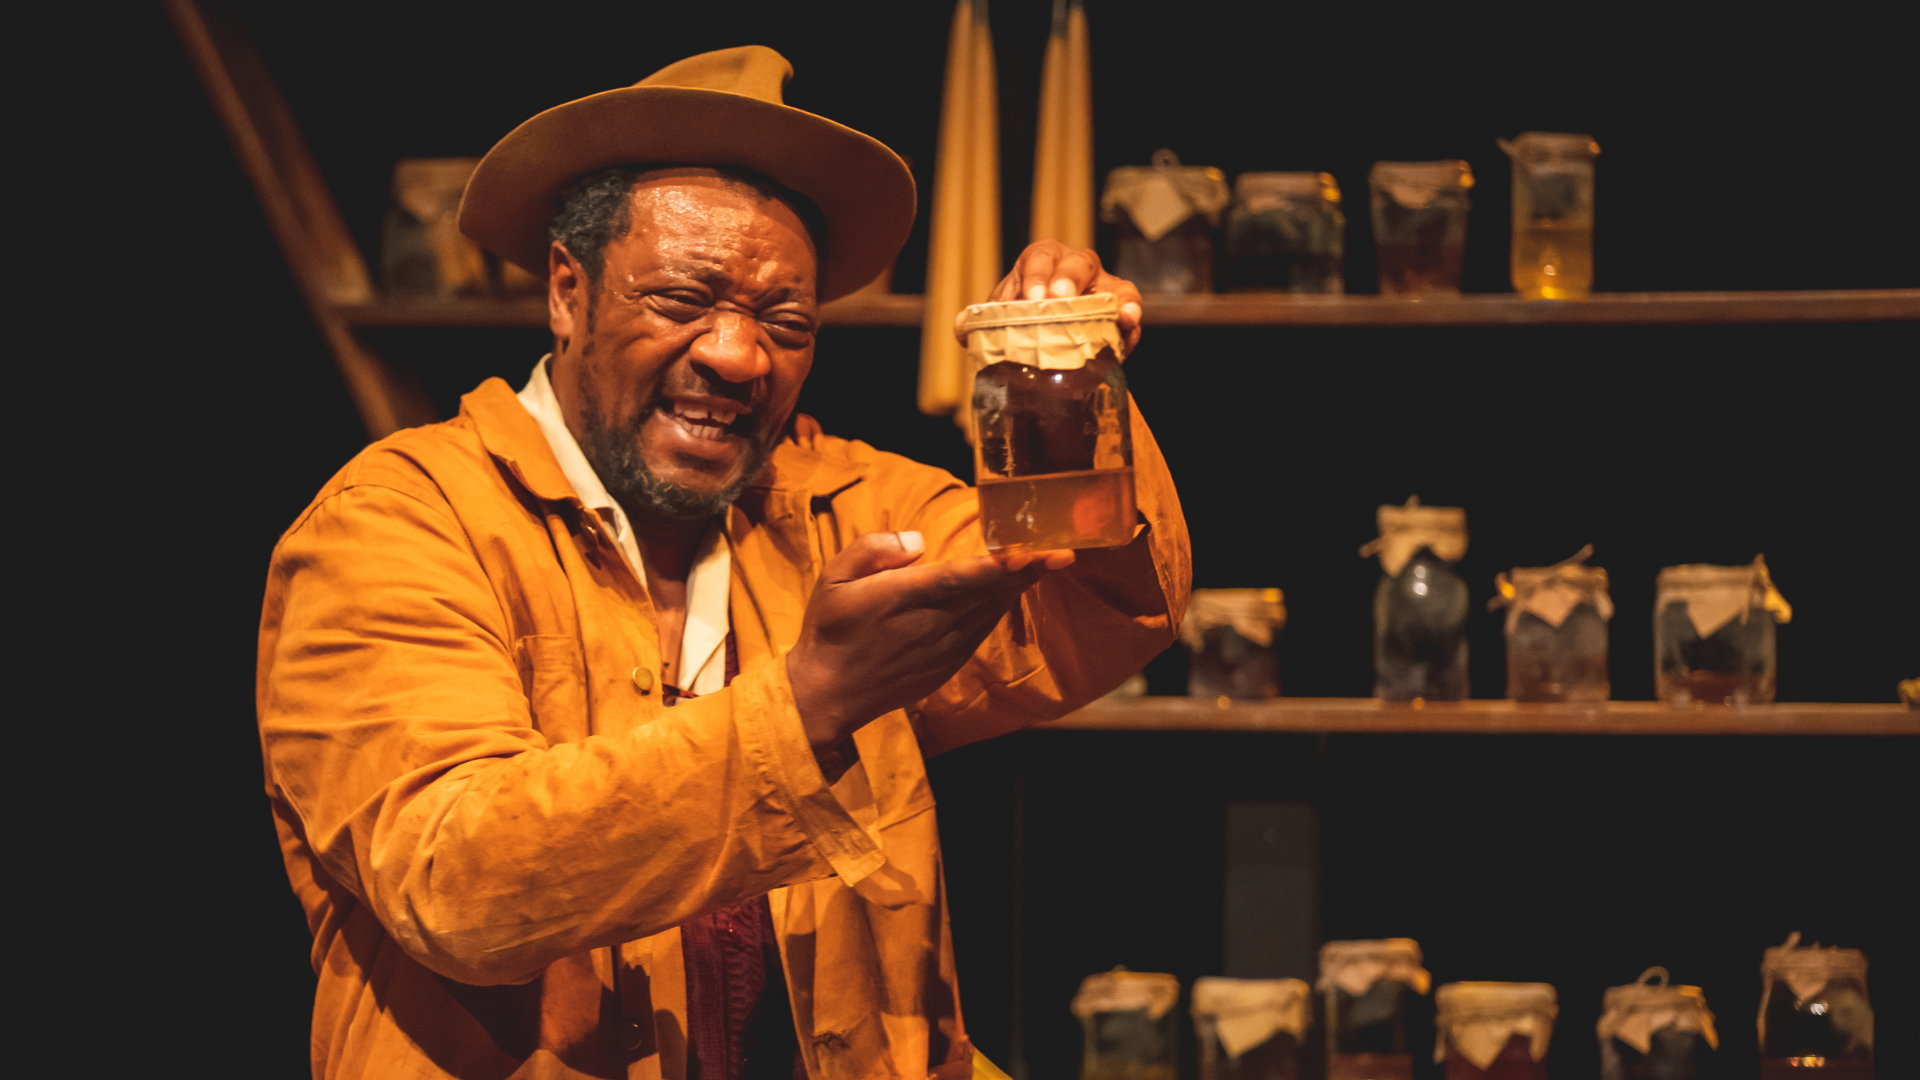 The Honey Man Production Photo: Honey Man (Everal Walsh) holds up a jar of honey while smiling